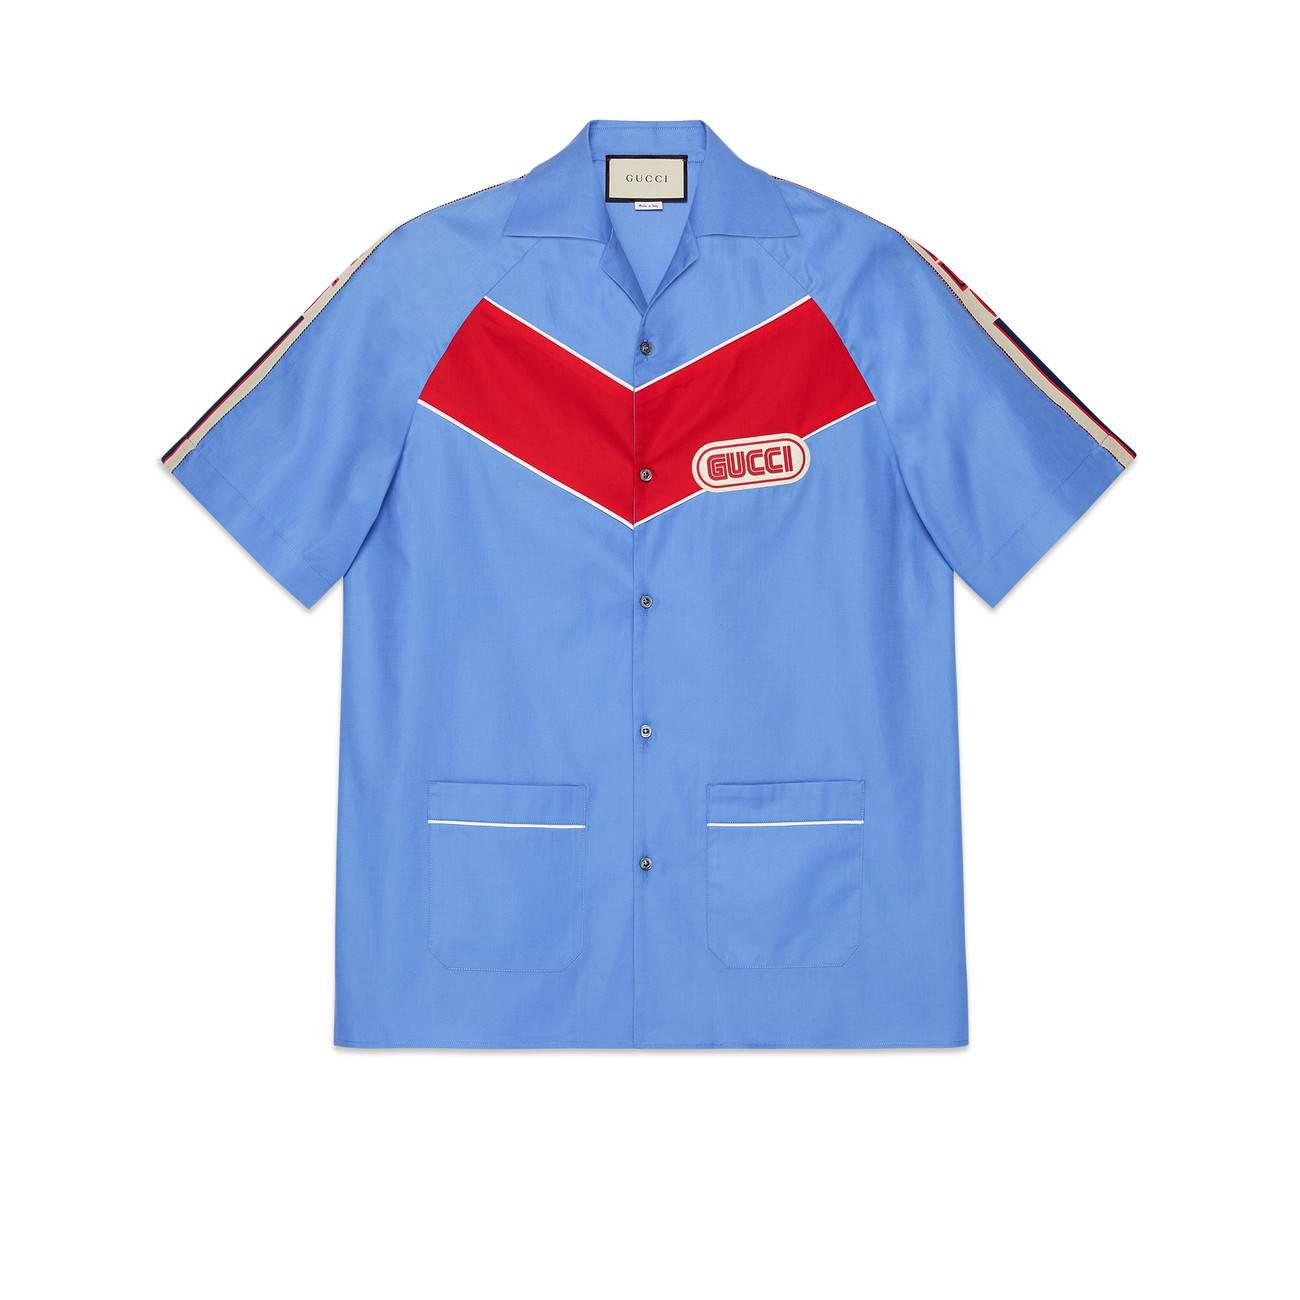 a2dbc4d7f97 Gucci - Blue Bowling Shirt With Patch for Men - Lyst. View fullscreen